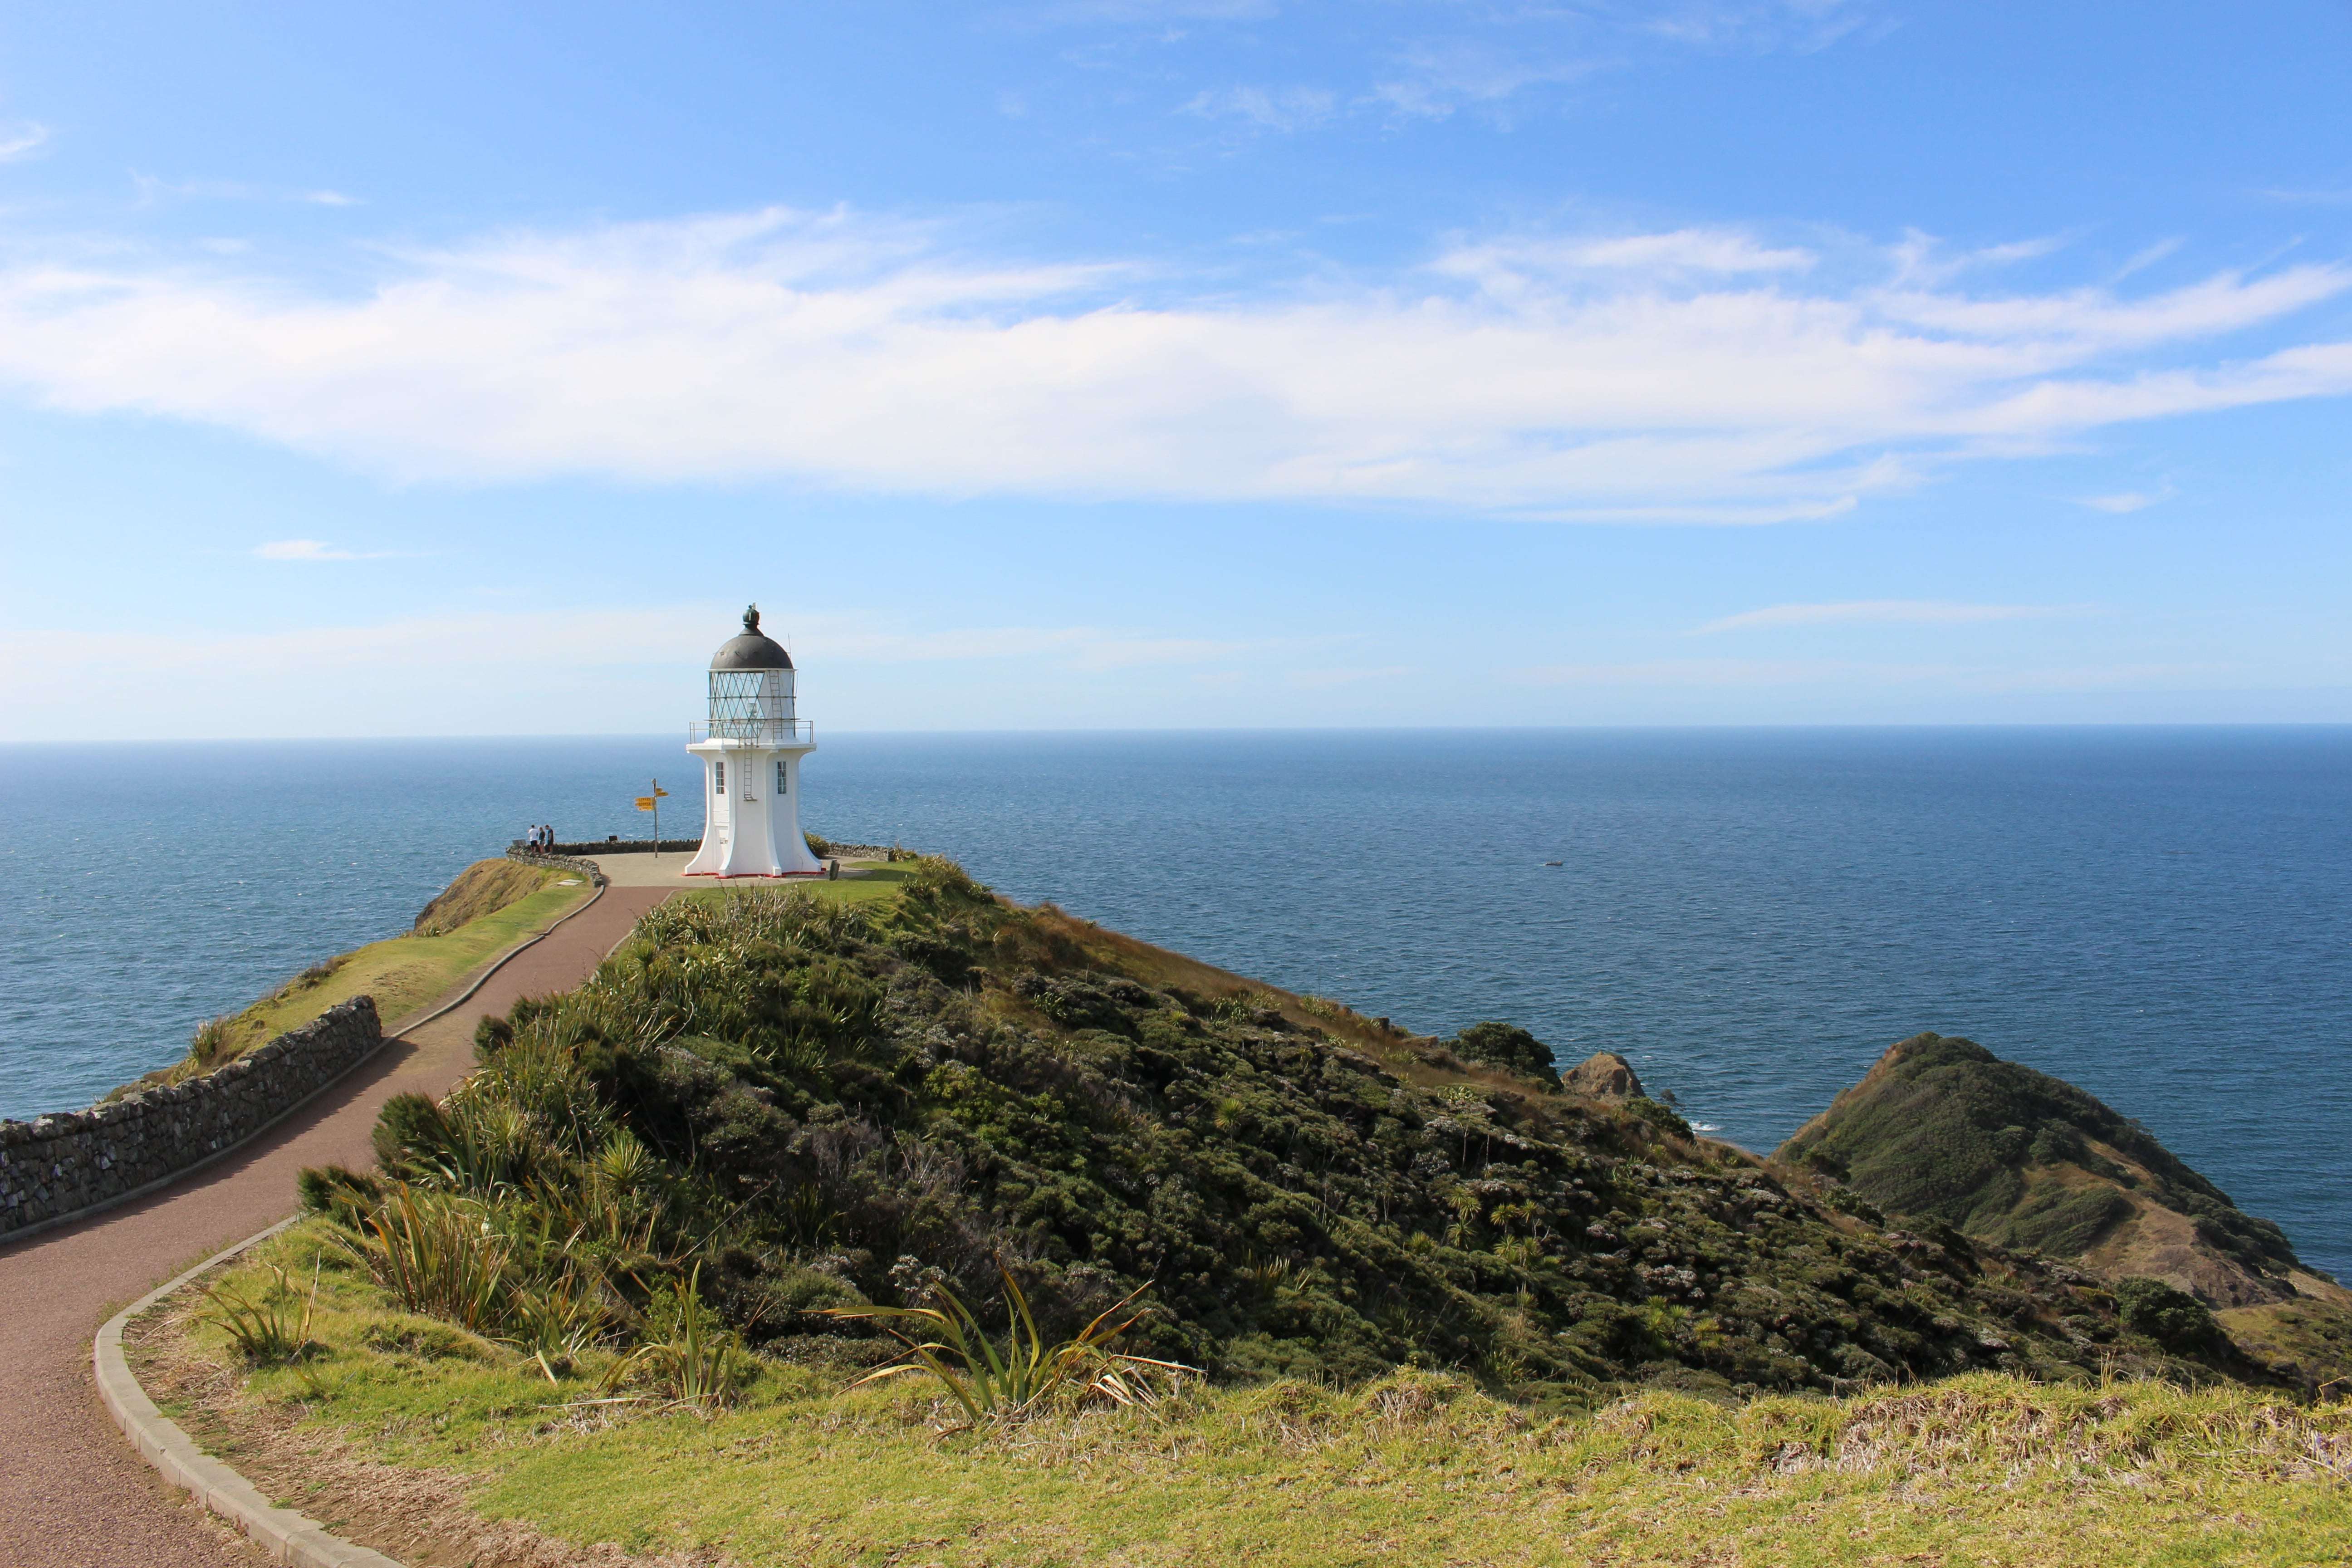 A Lighthouse in New Zealand